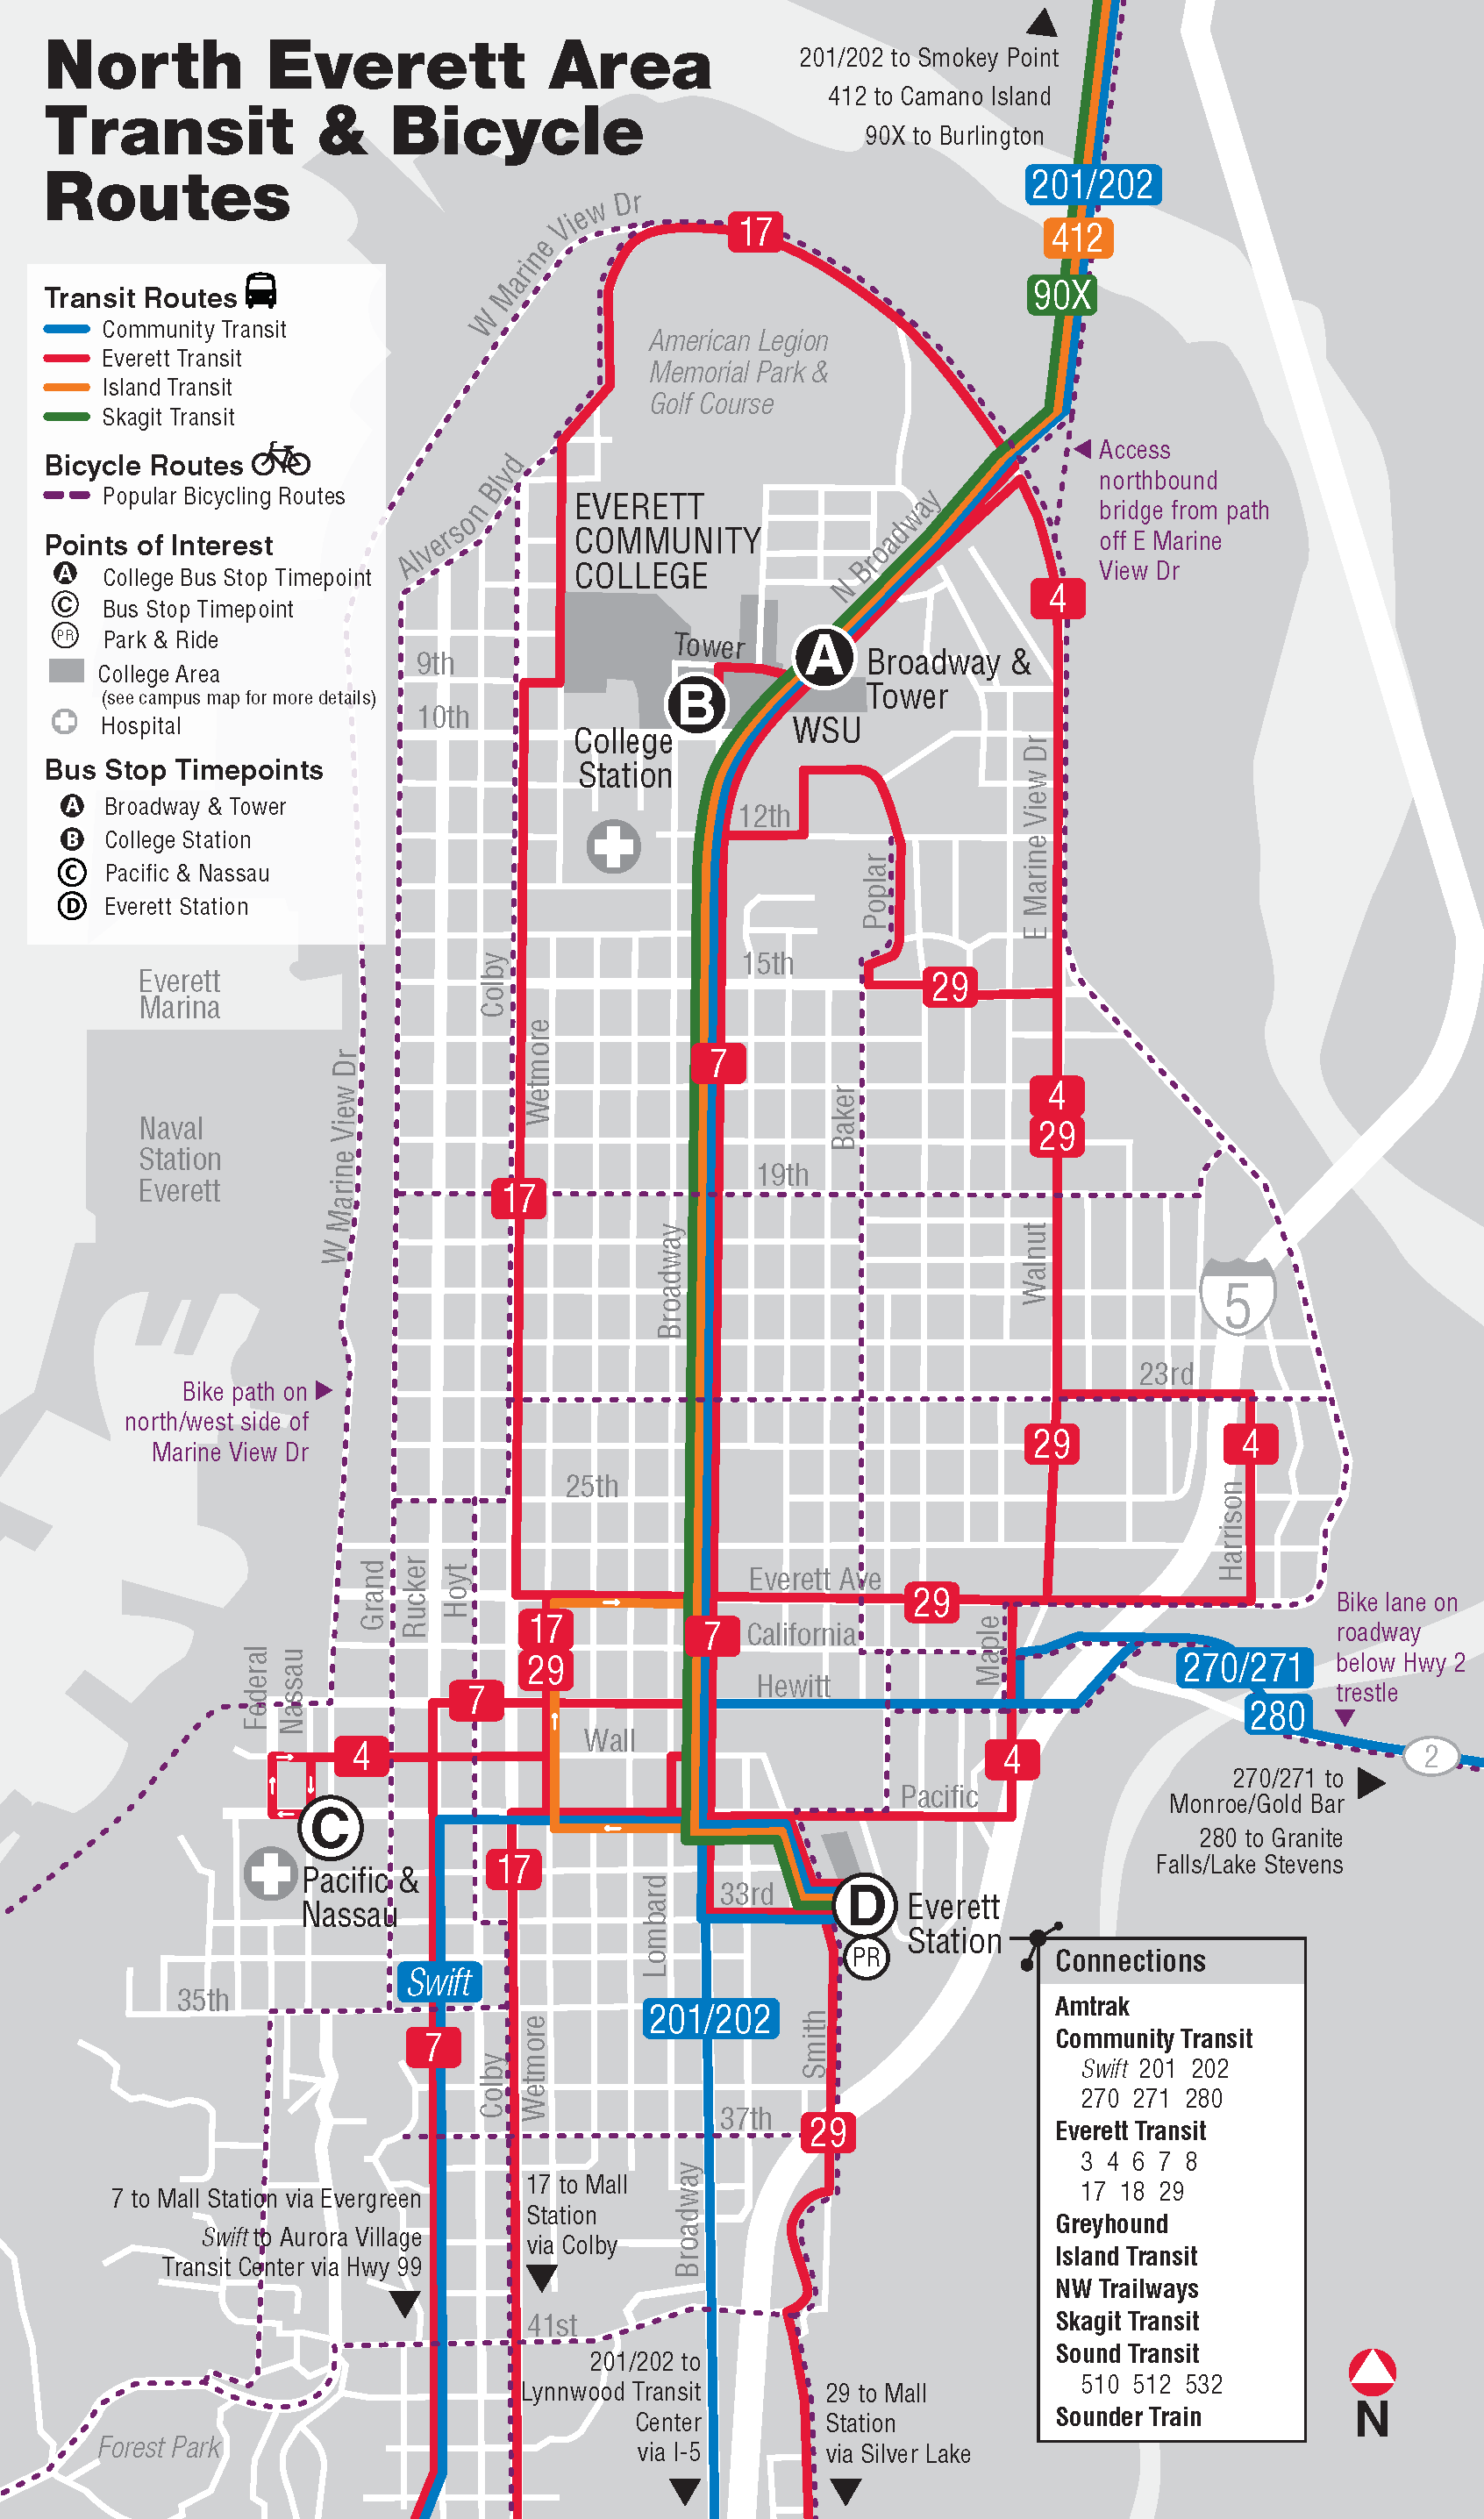 Map of north Everett area transit and bicycle routes